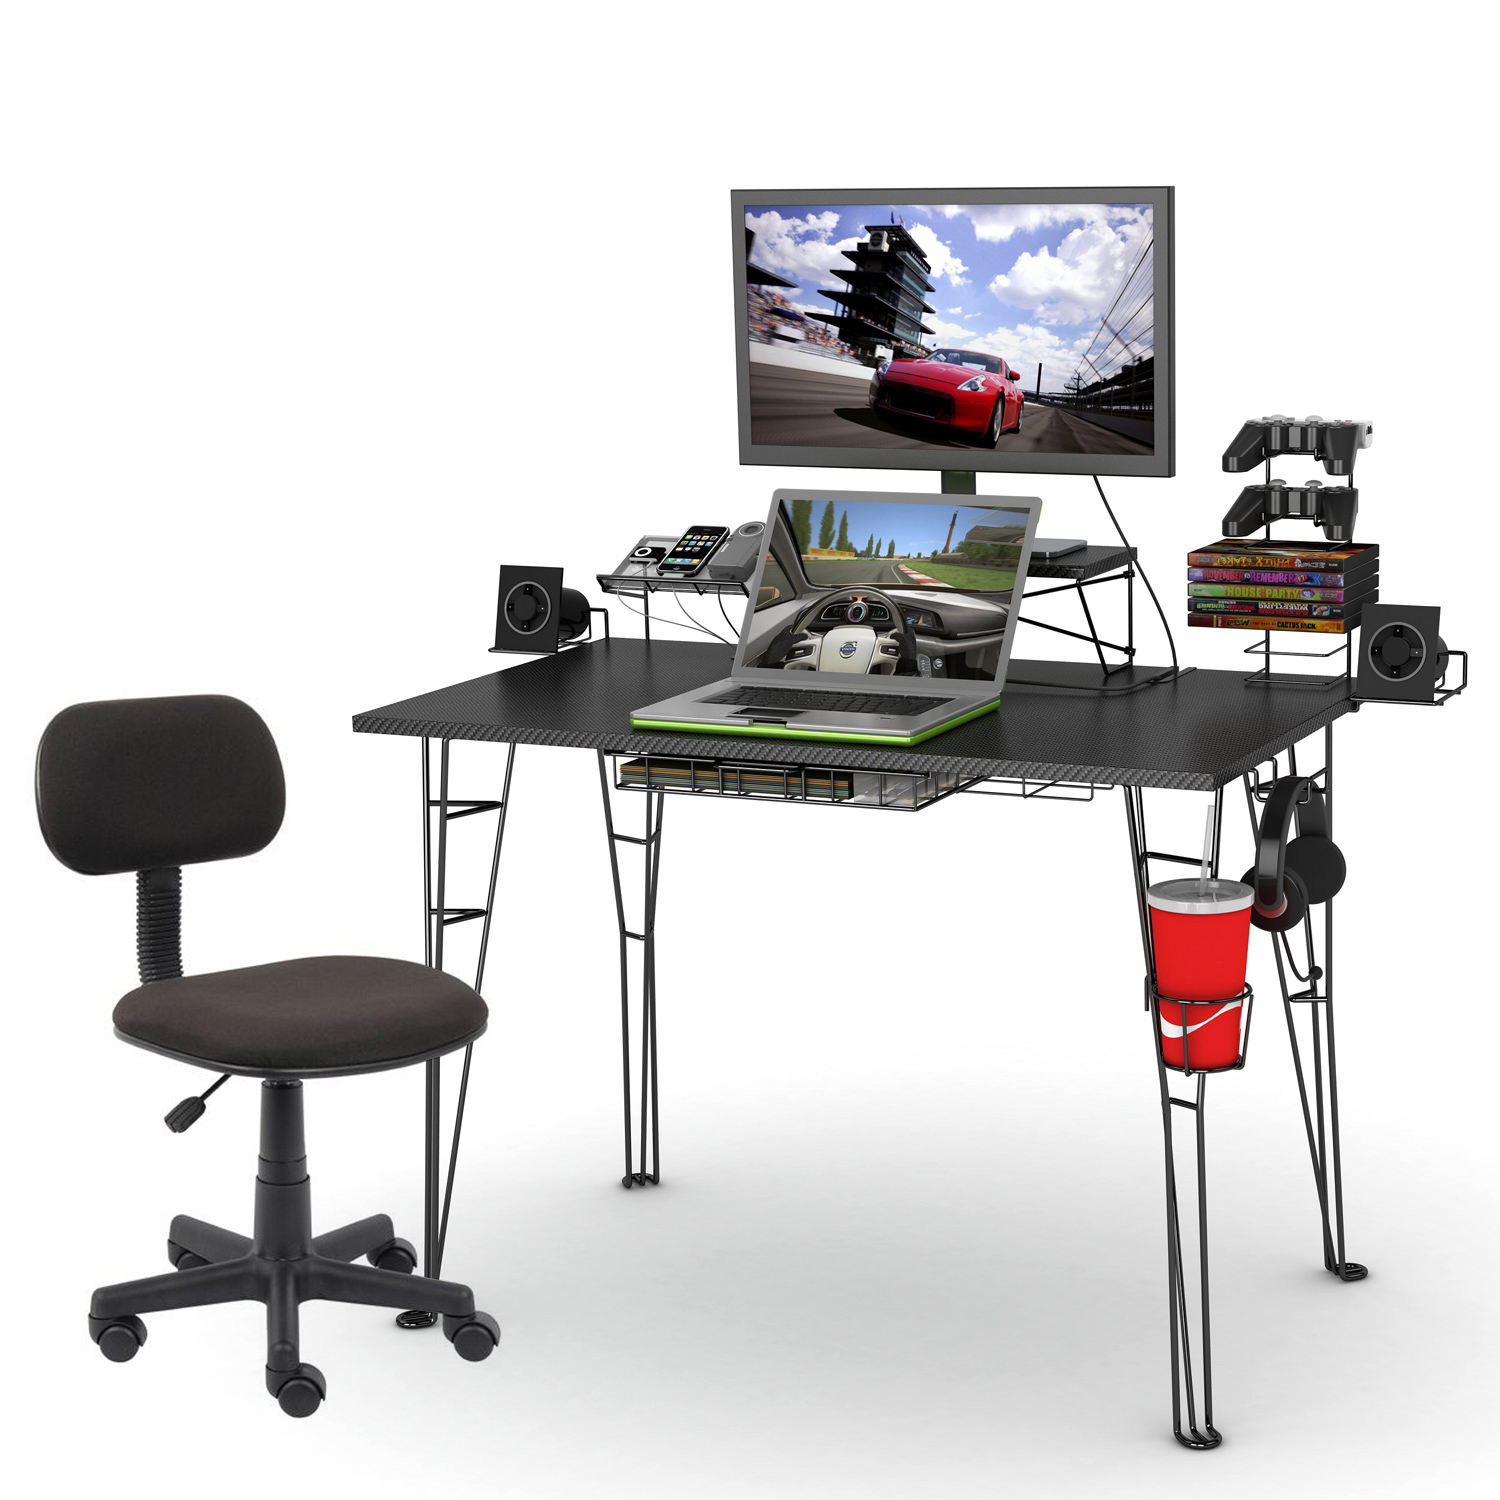 atlantic gaming desk and task chair. Black Bedroom Furniture Sets. Home Design Ideas